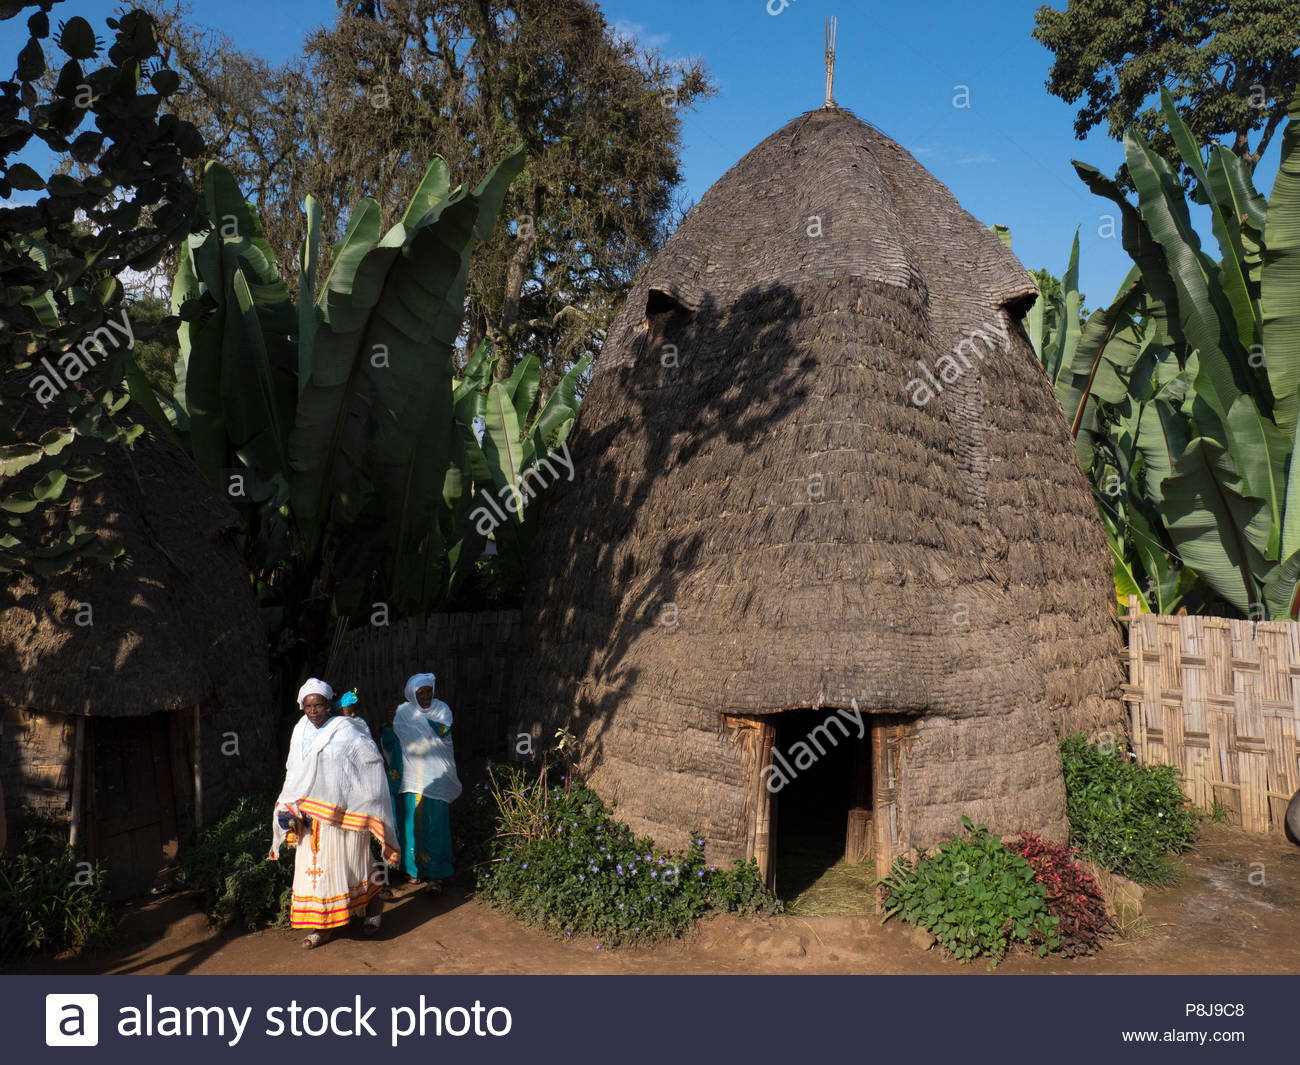 Cottage in the village of Dorze, Ethiopia - Stock Image